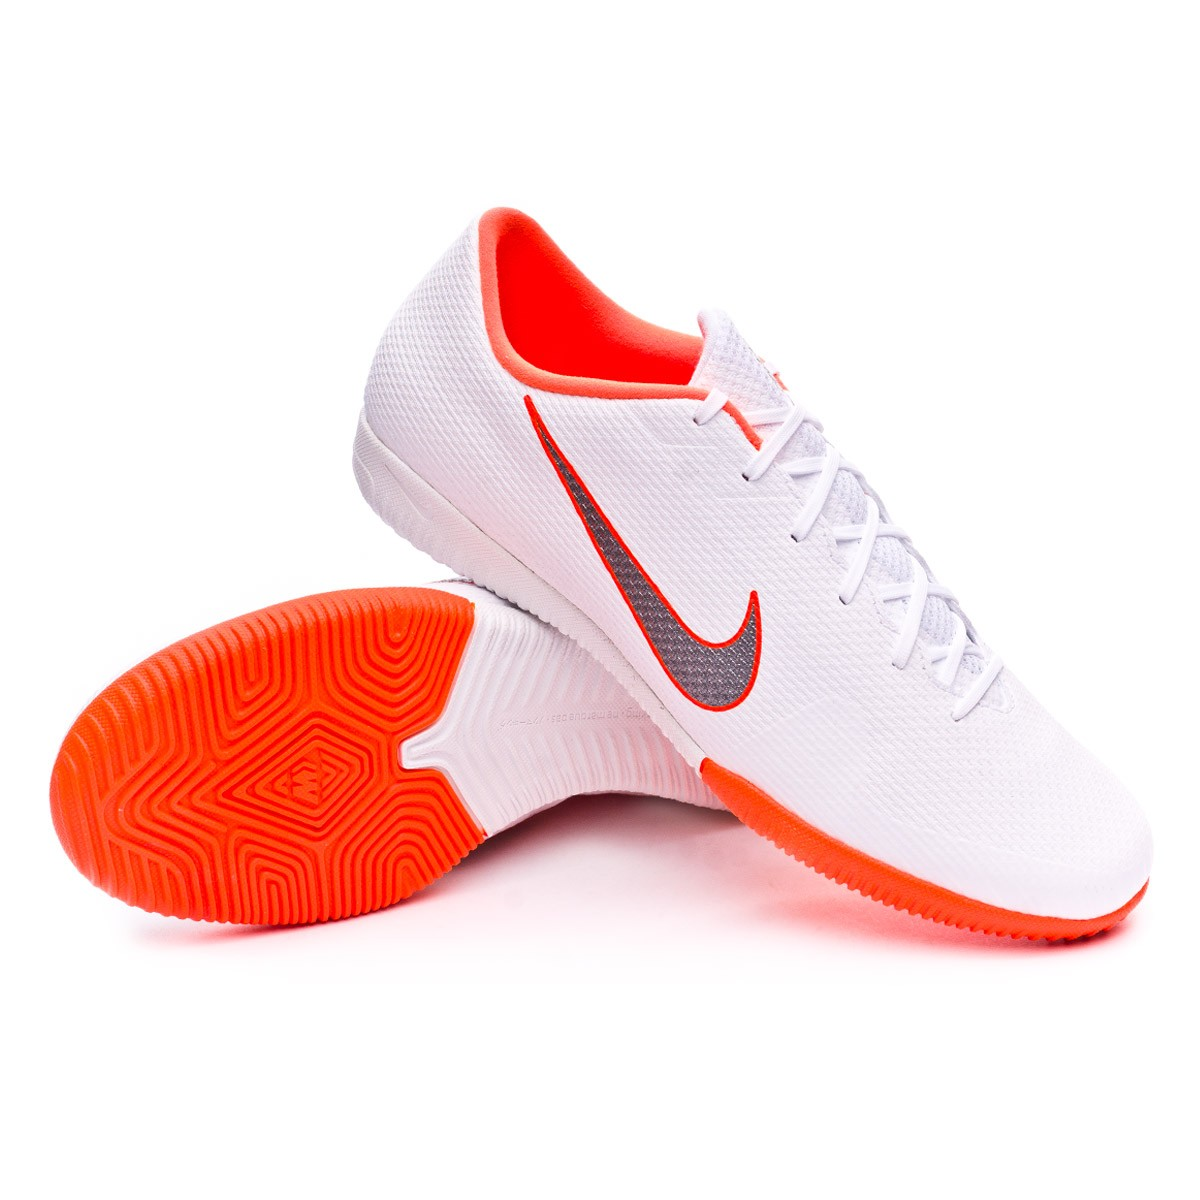 a505ef0da4f Zapatilla Nike Mercurial VaporX XII Academy IC White-Metallic cool  grey-Total orange - Tienda de Fútbol. Leaked soccer